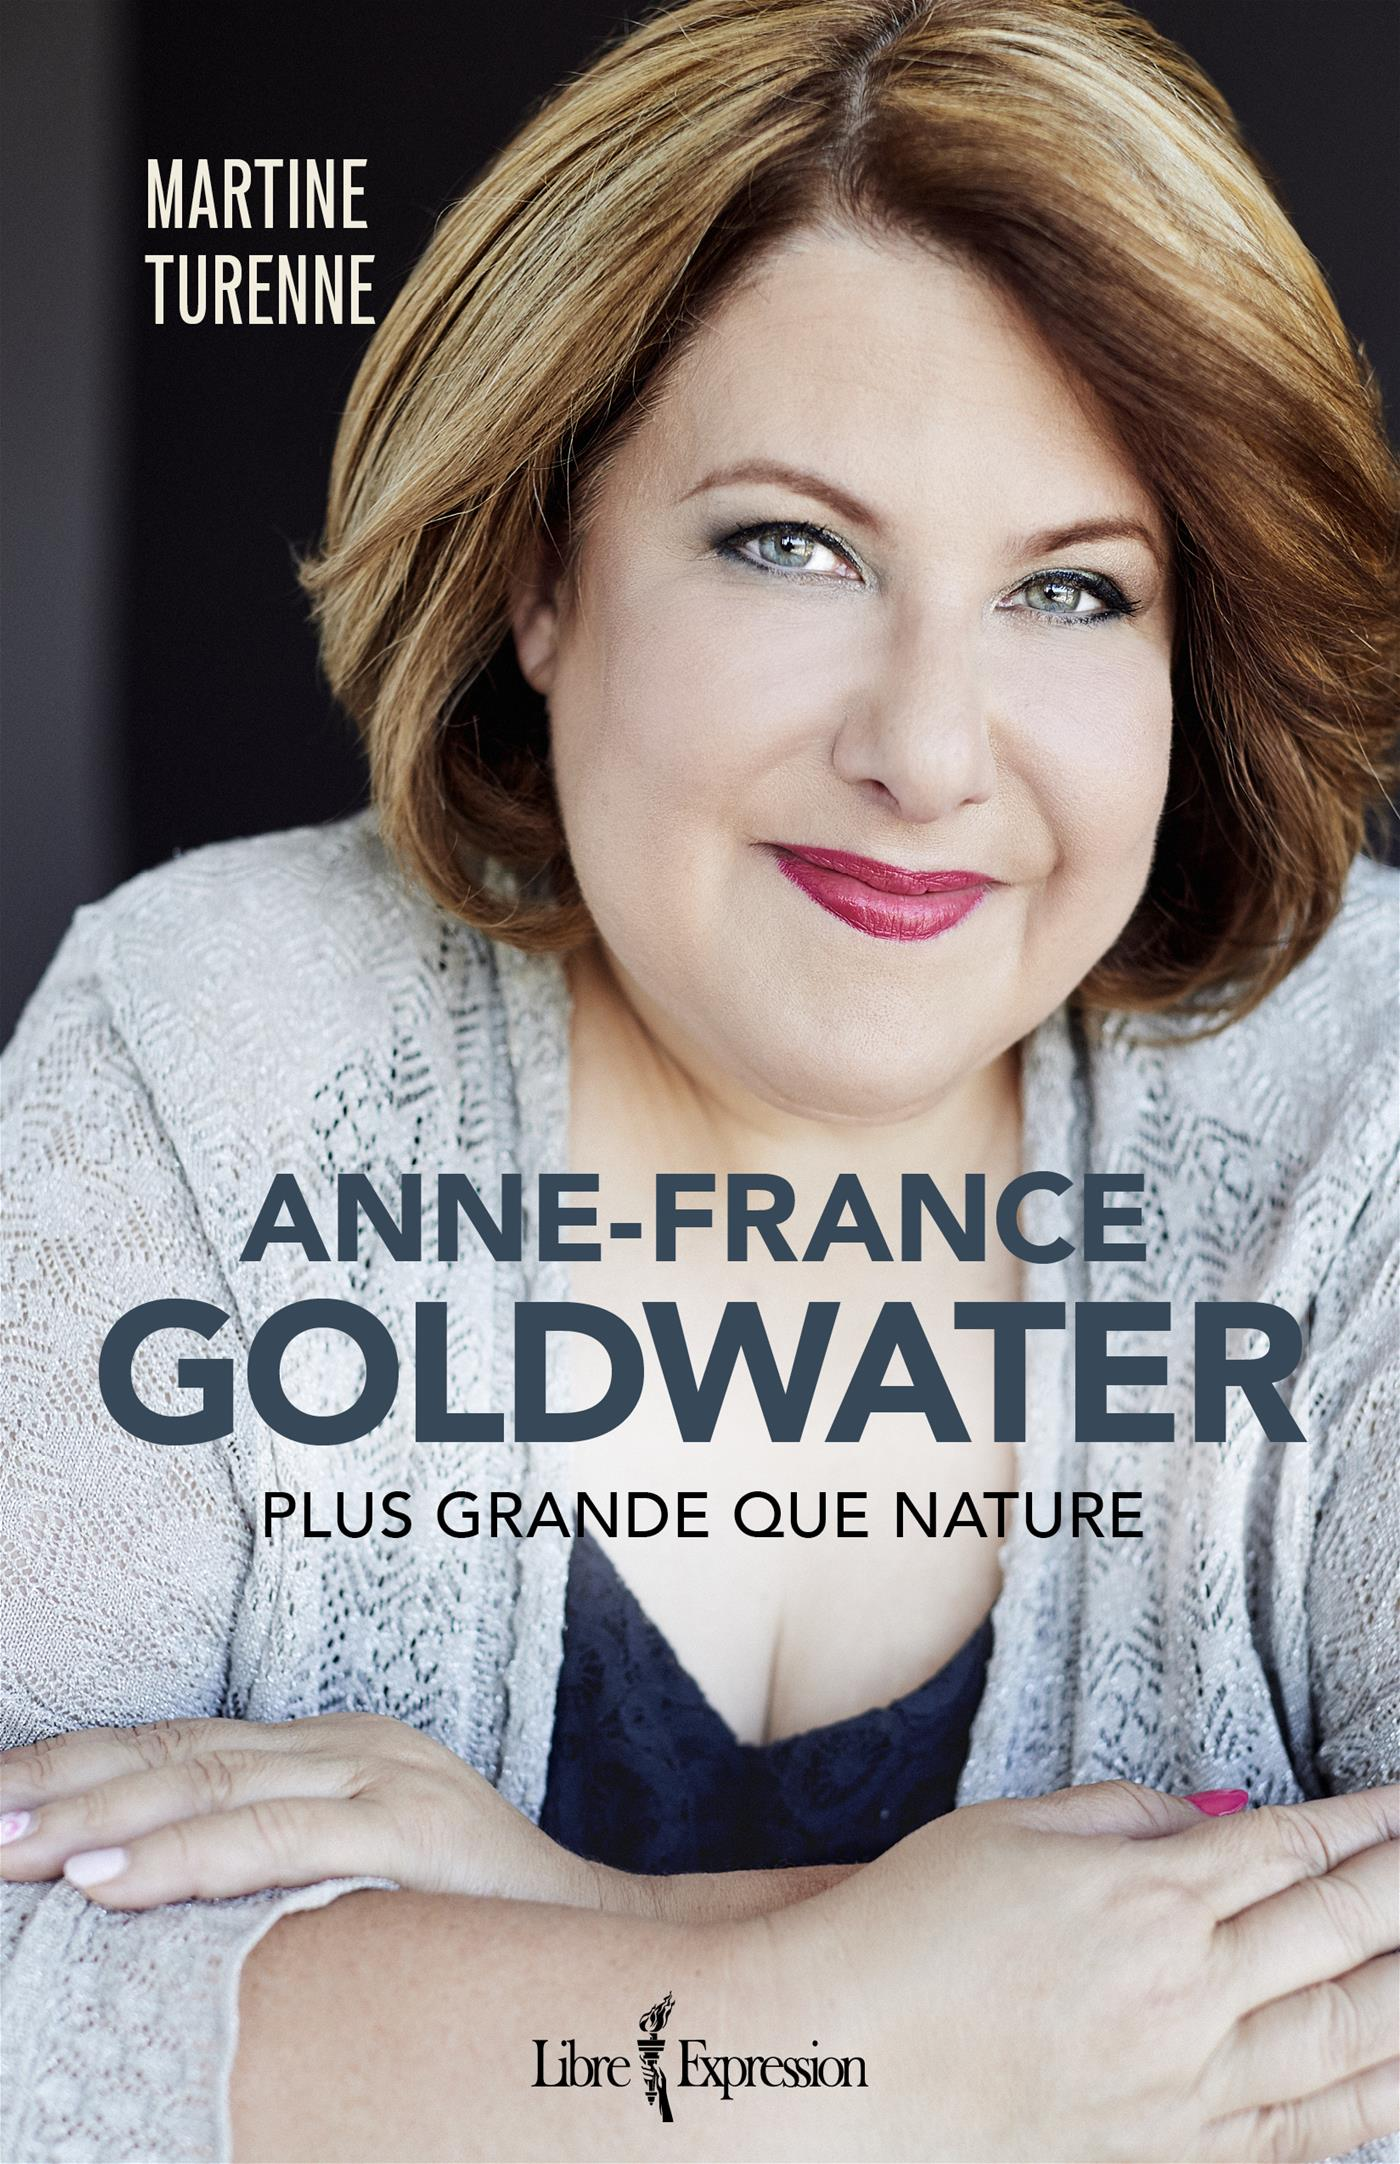 Anne-France Goldwater